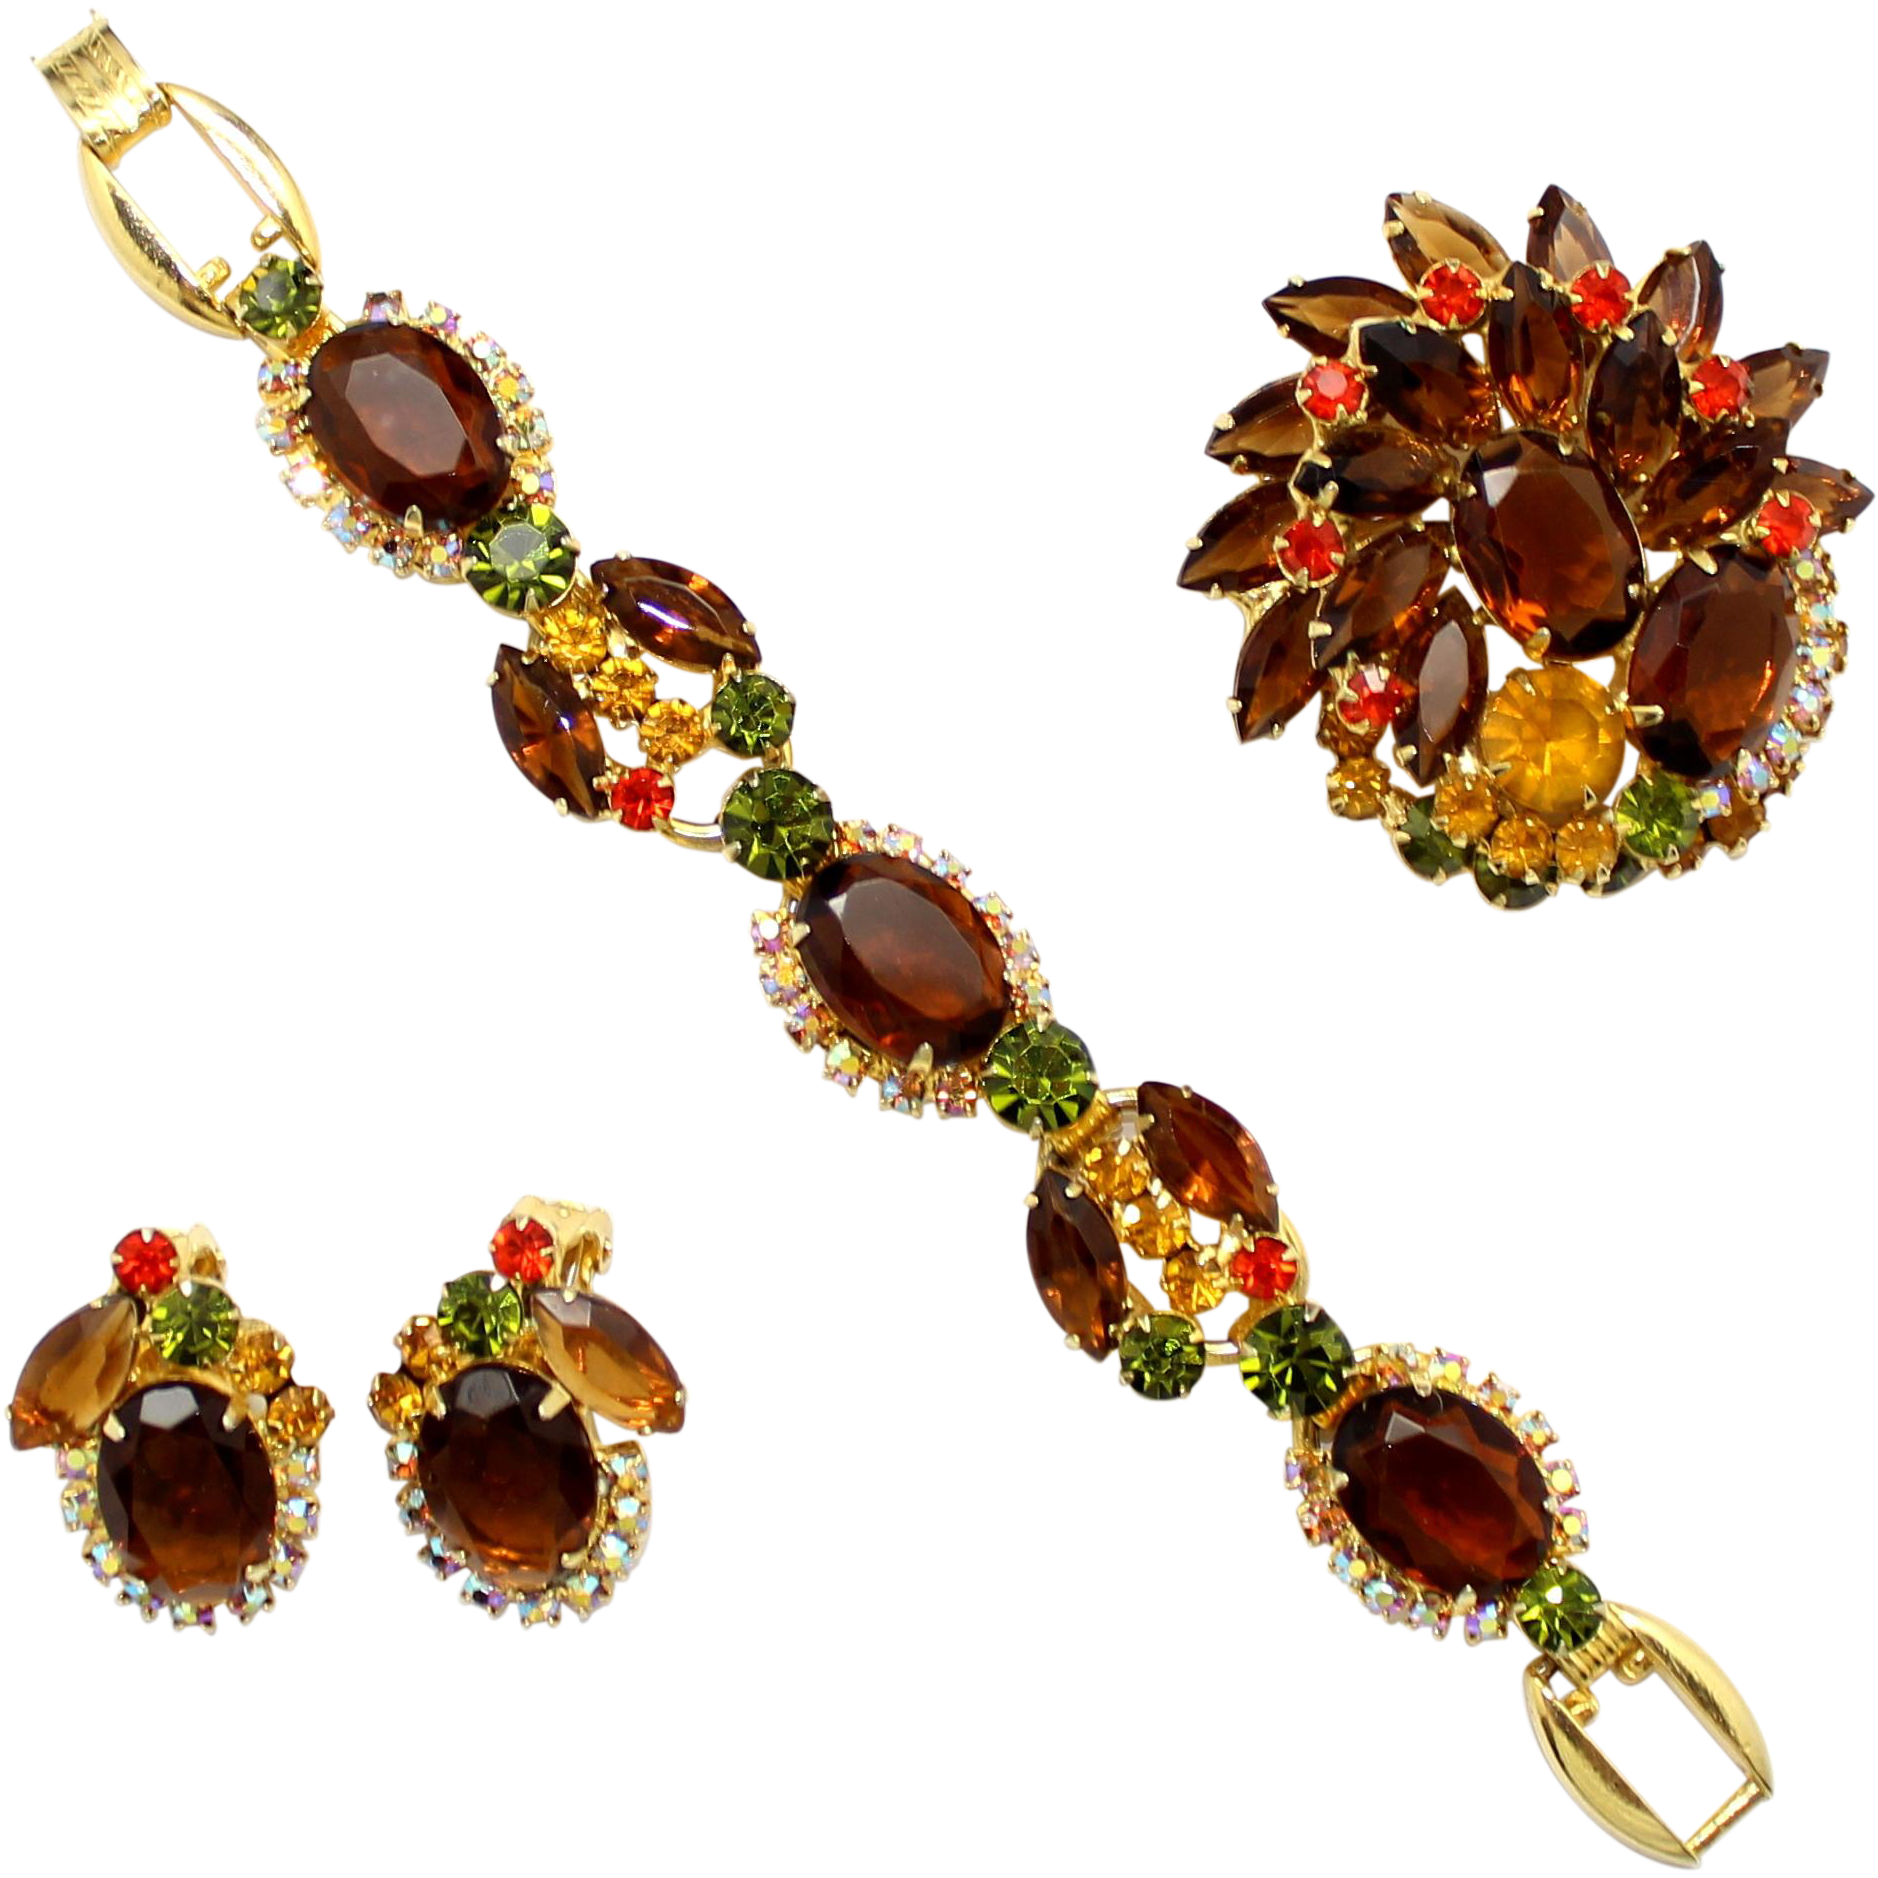 Vintage Juliana (D and E) Book Piece Topaz, Olivine and (orange) Sun Rhinestone Bracelet, Brooch and Earrings Parure